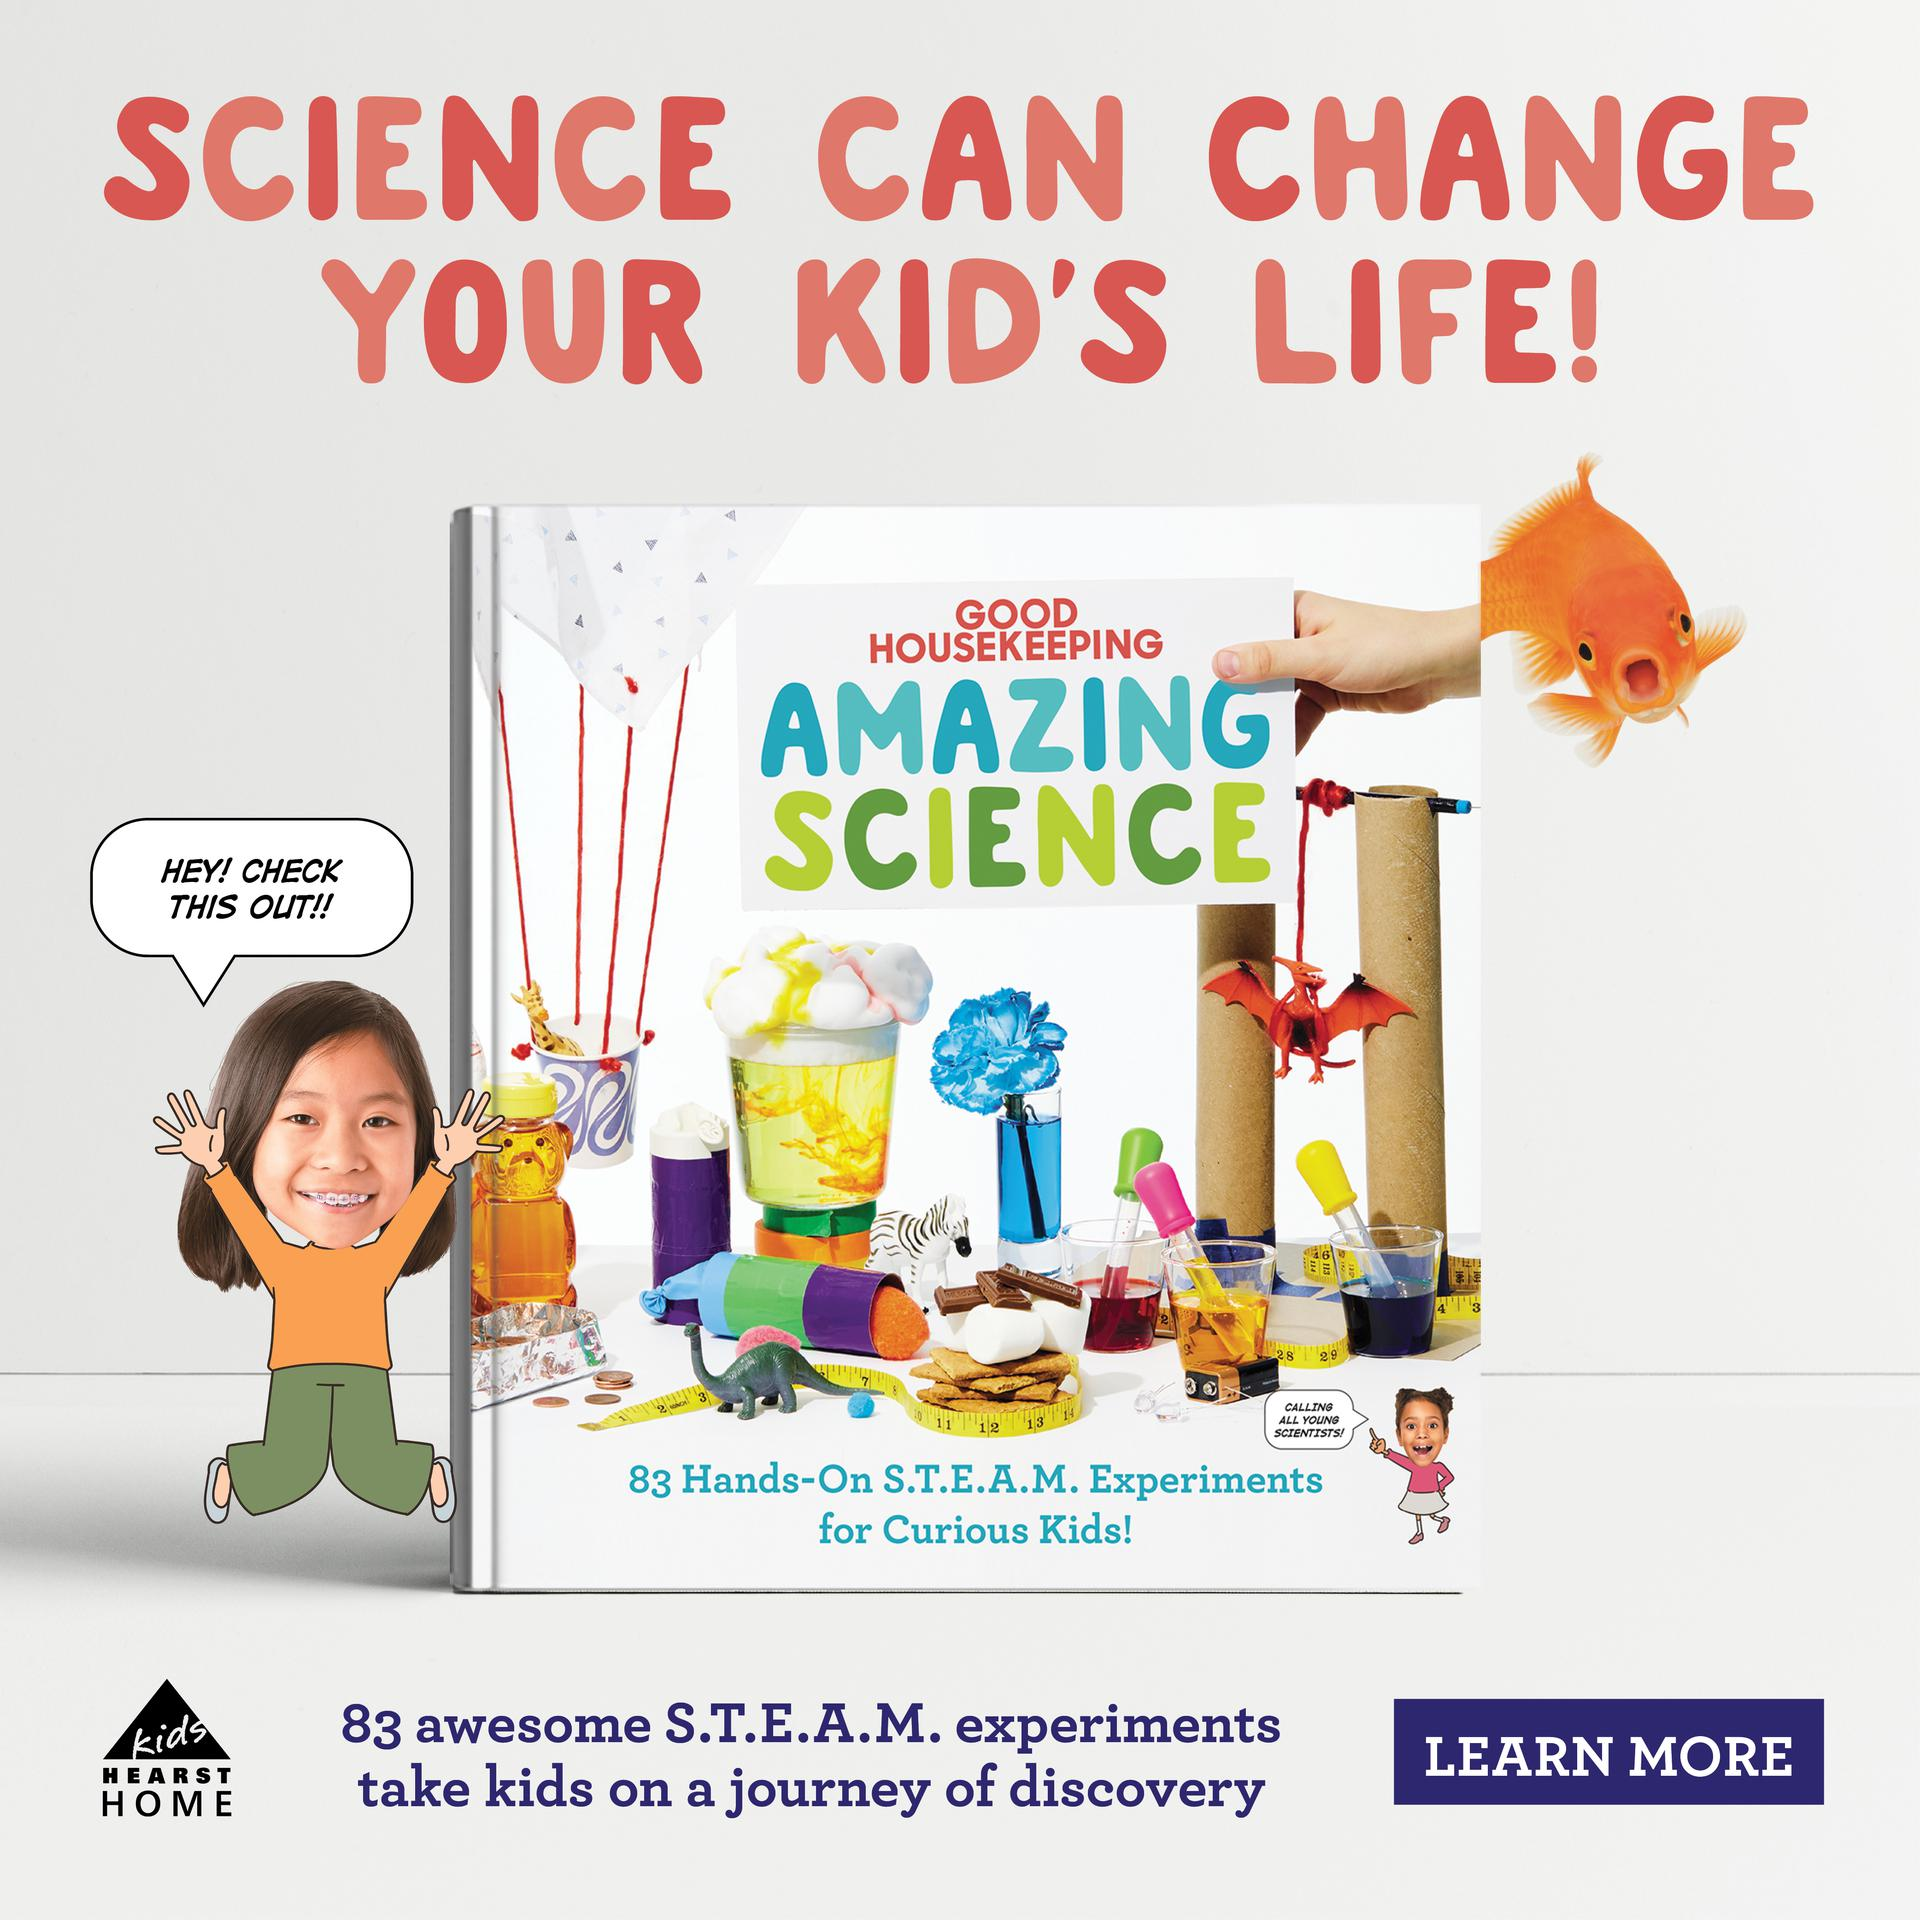 Science can change your kid's life! 83 awesome S.T.E.A.M. experiments take kids on a journey of discovery.